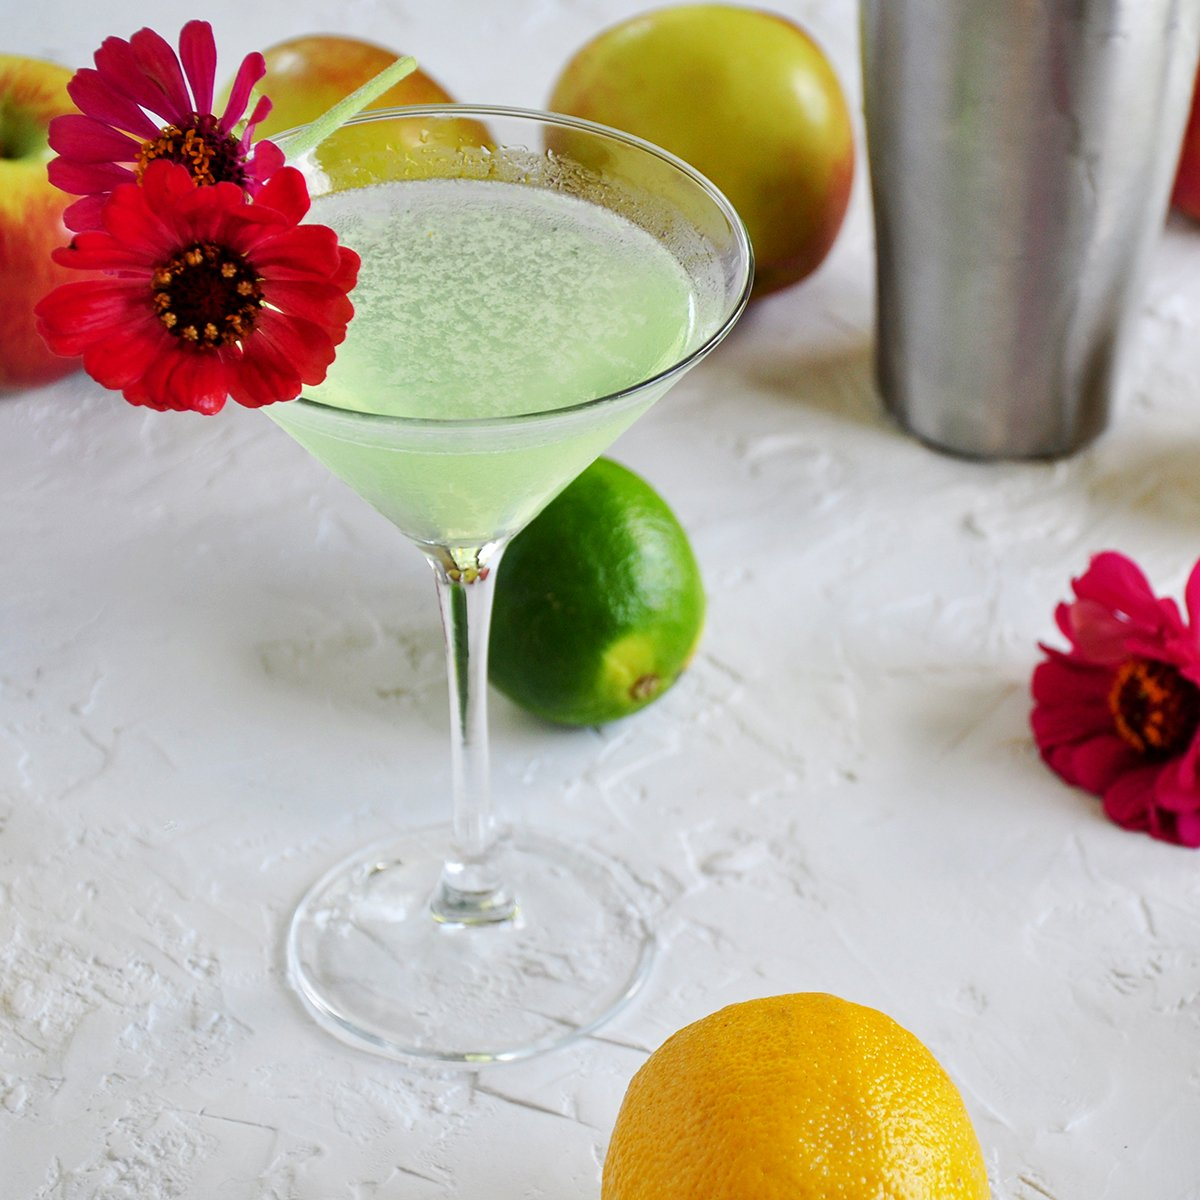 Appletini with lemons, limes, apples and flowers in the background.